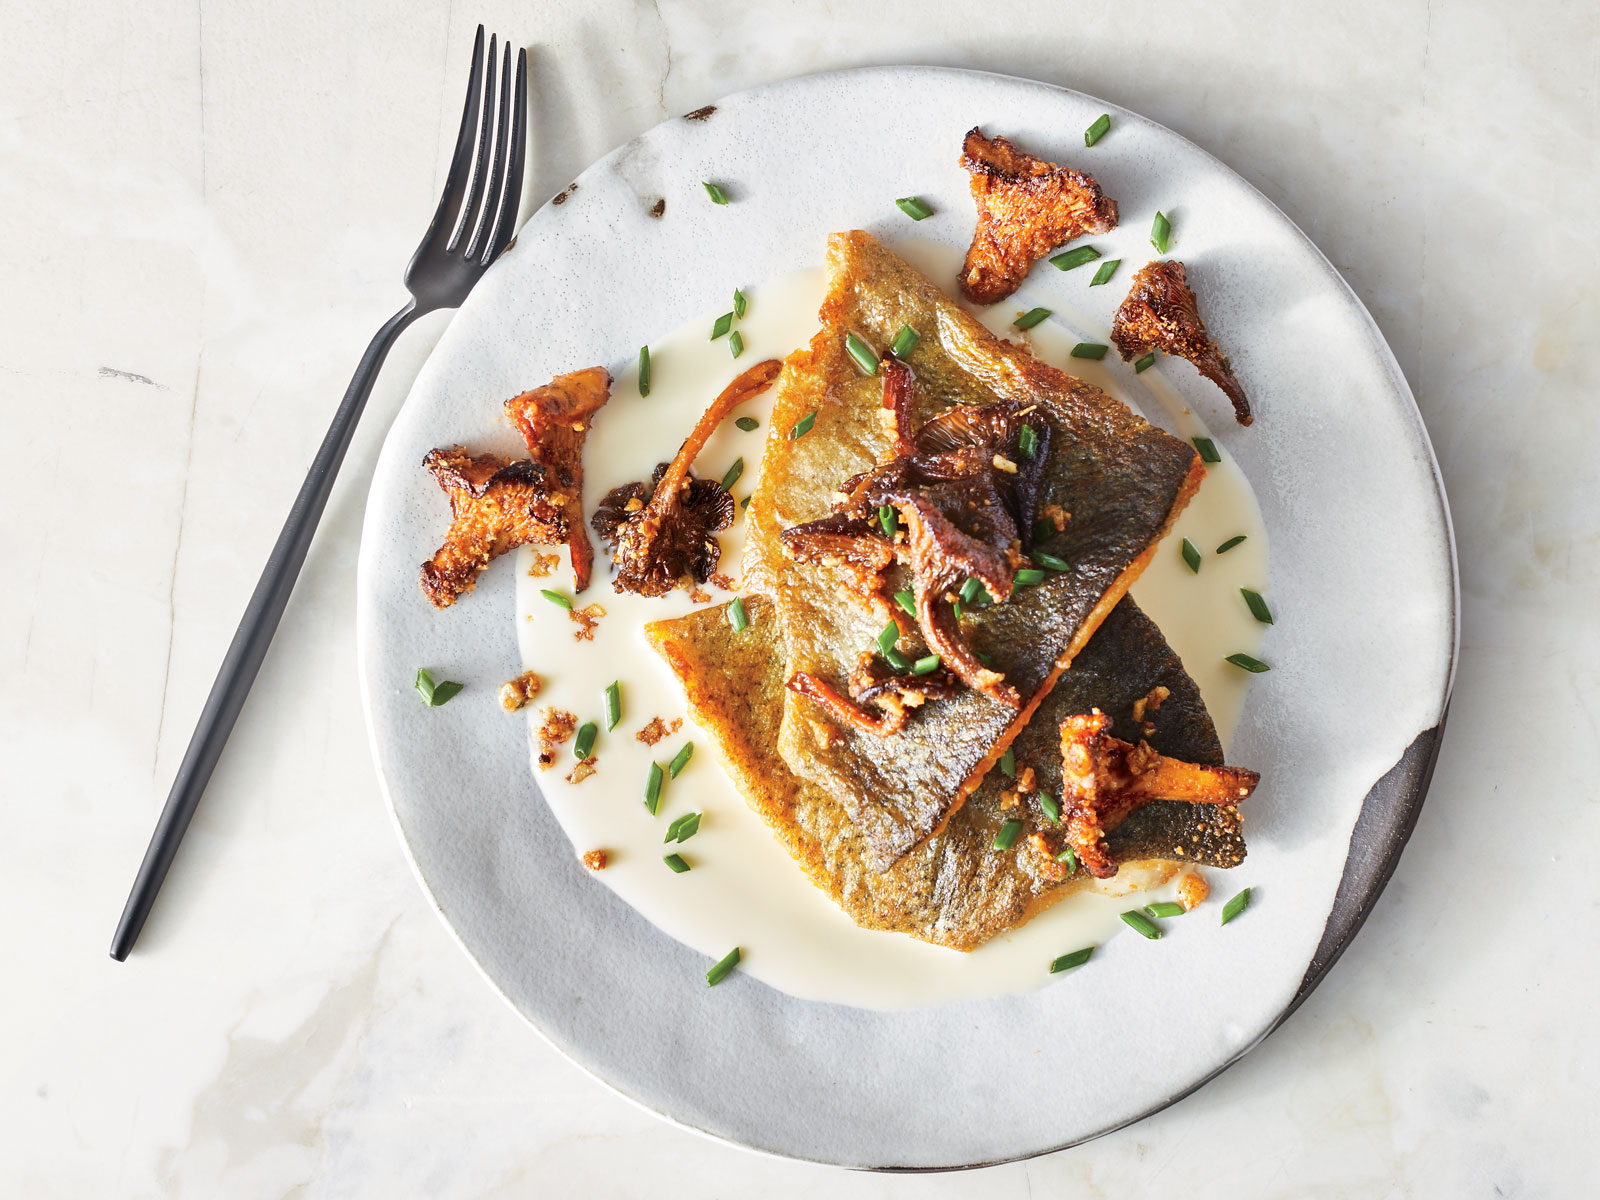 Pan Seared Trout with Green Garlic and Crunchy Chanterelles